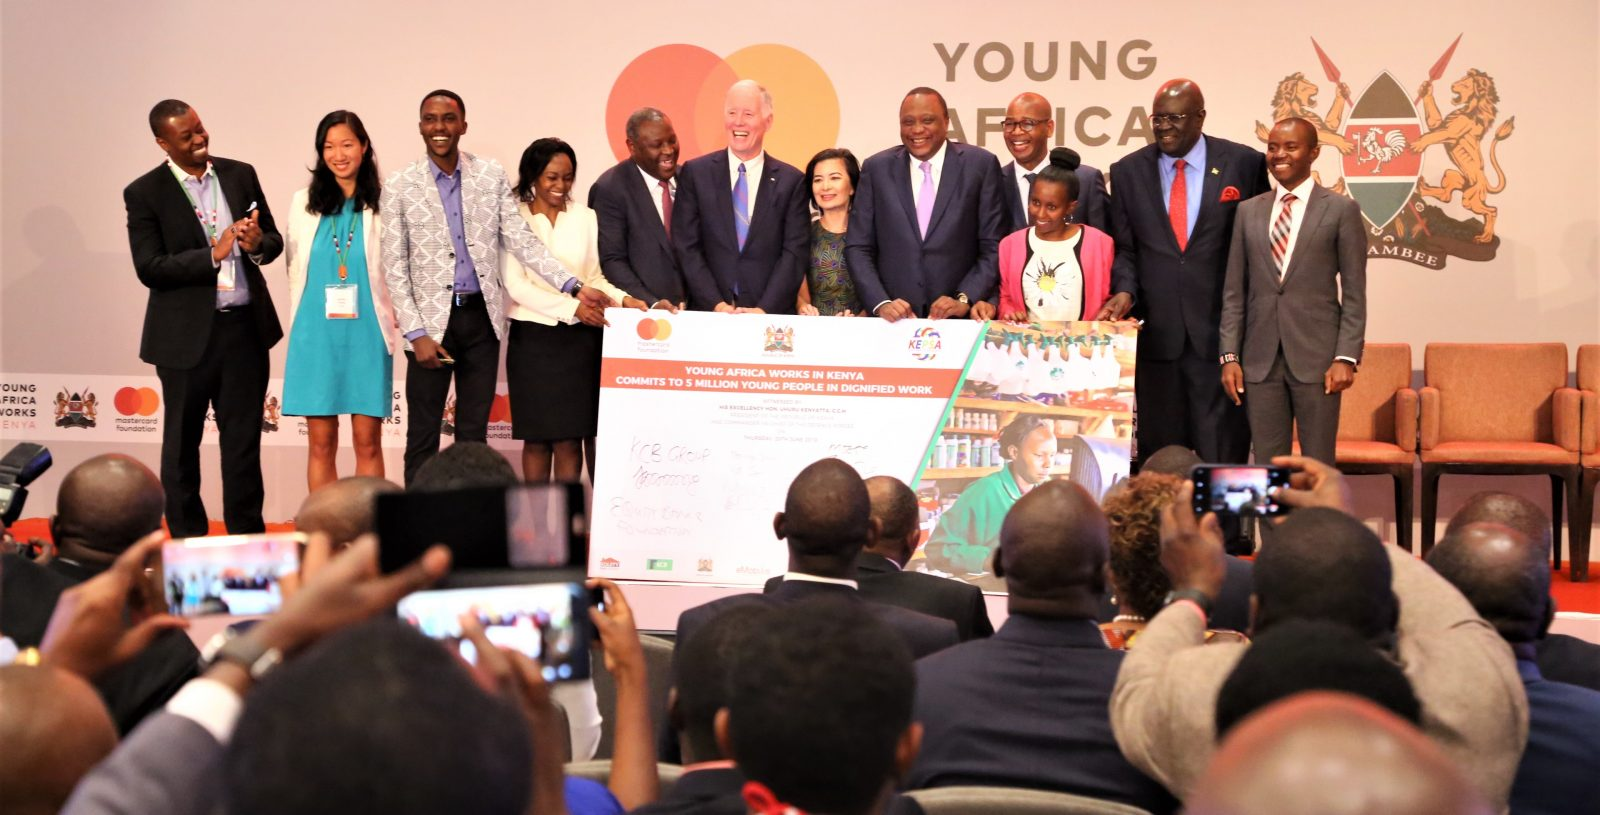 KCB Foundation Secures KES 10 Billion Funding From MasterCard Foundation for Scaling Up 2jiajiri